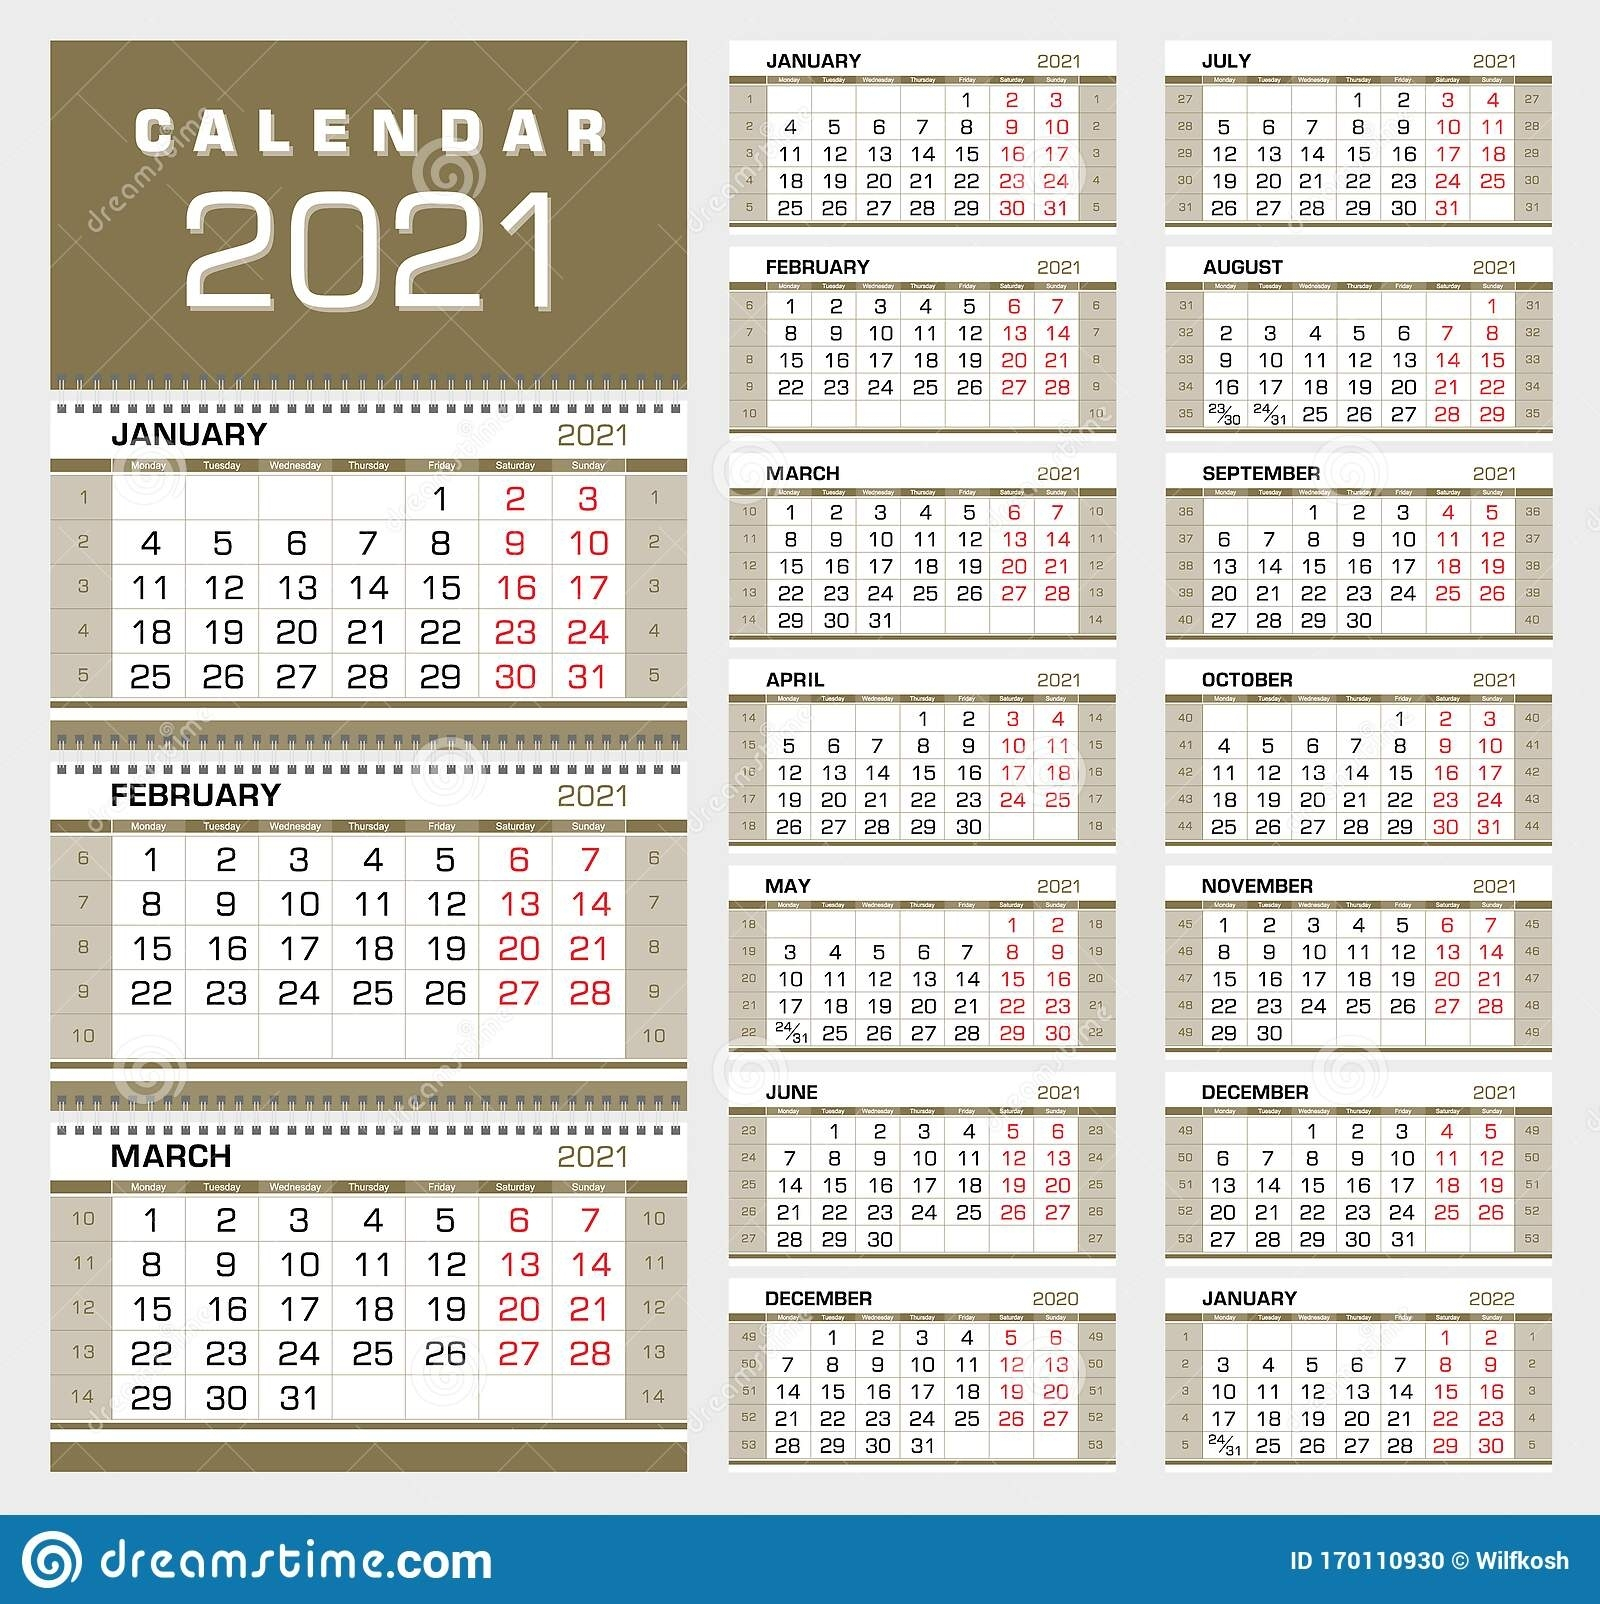 Free Printable 2021 Calendar Week Starts With Saturday for 2021 Calendar Excel Start Monday